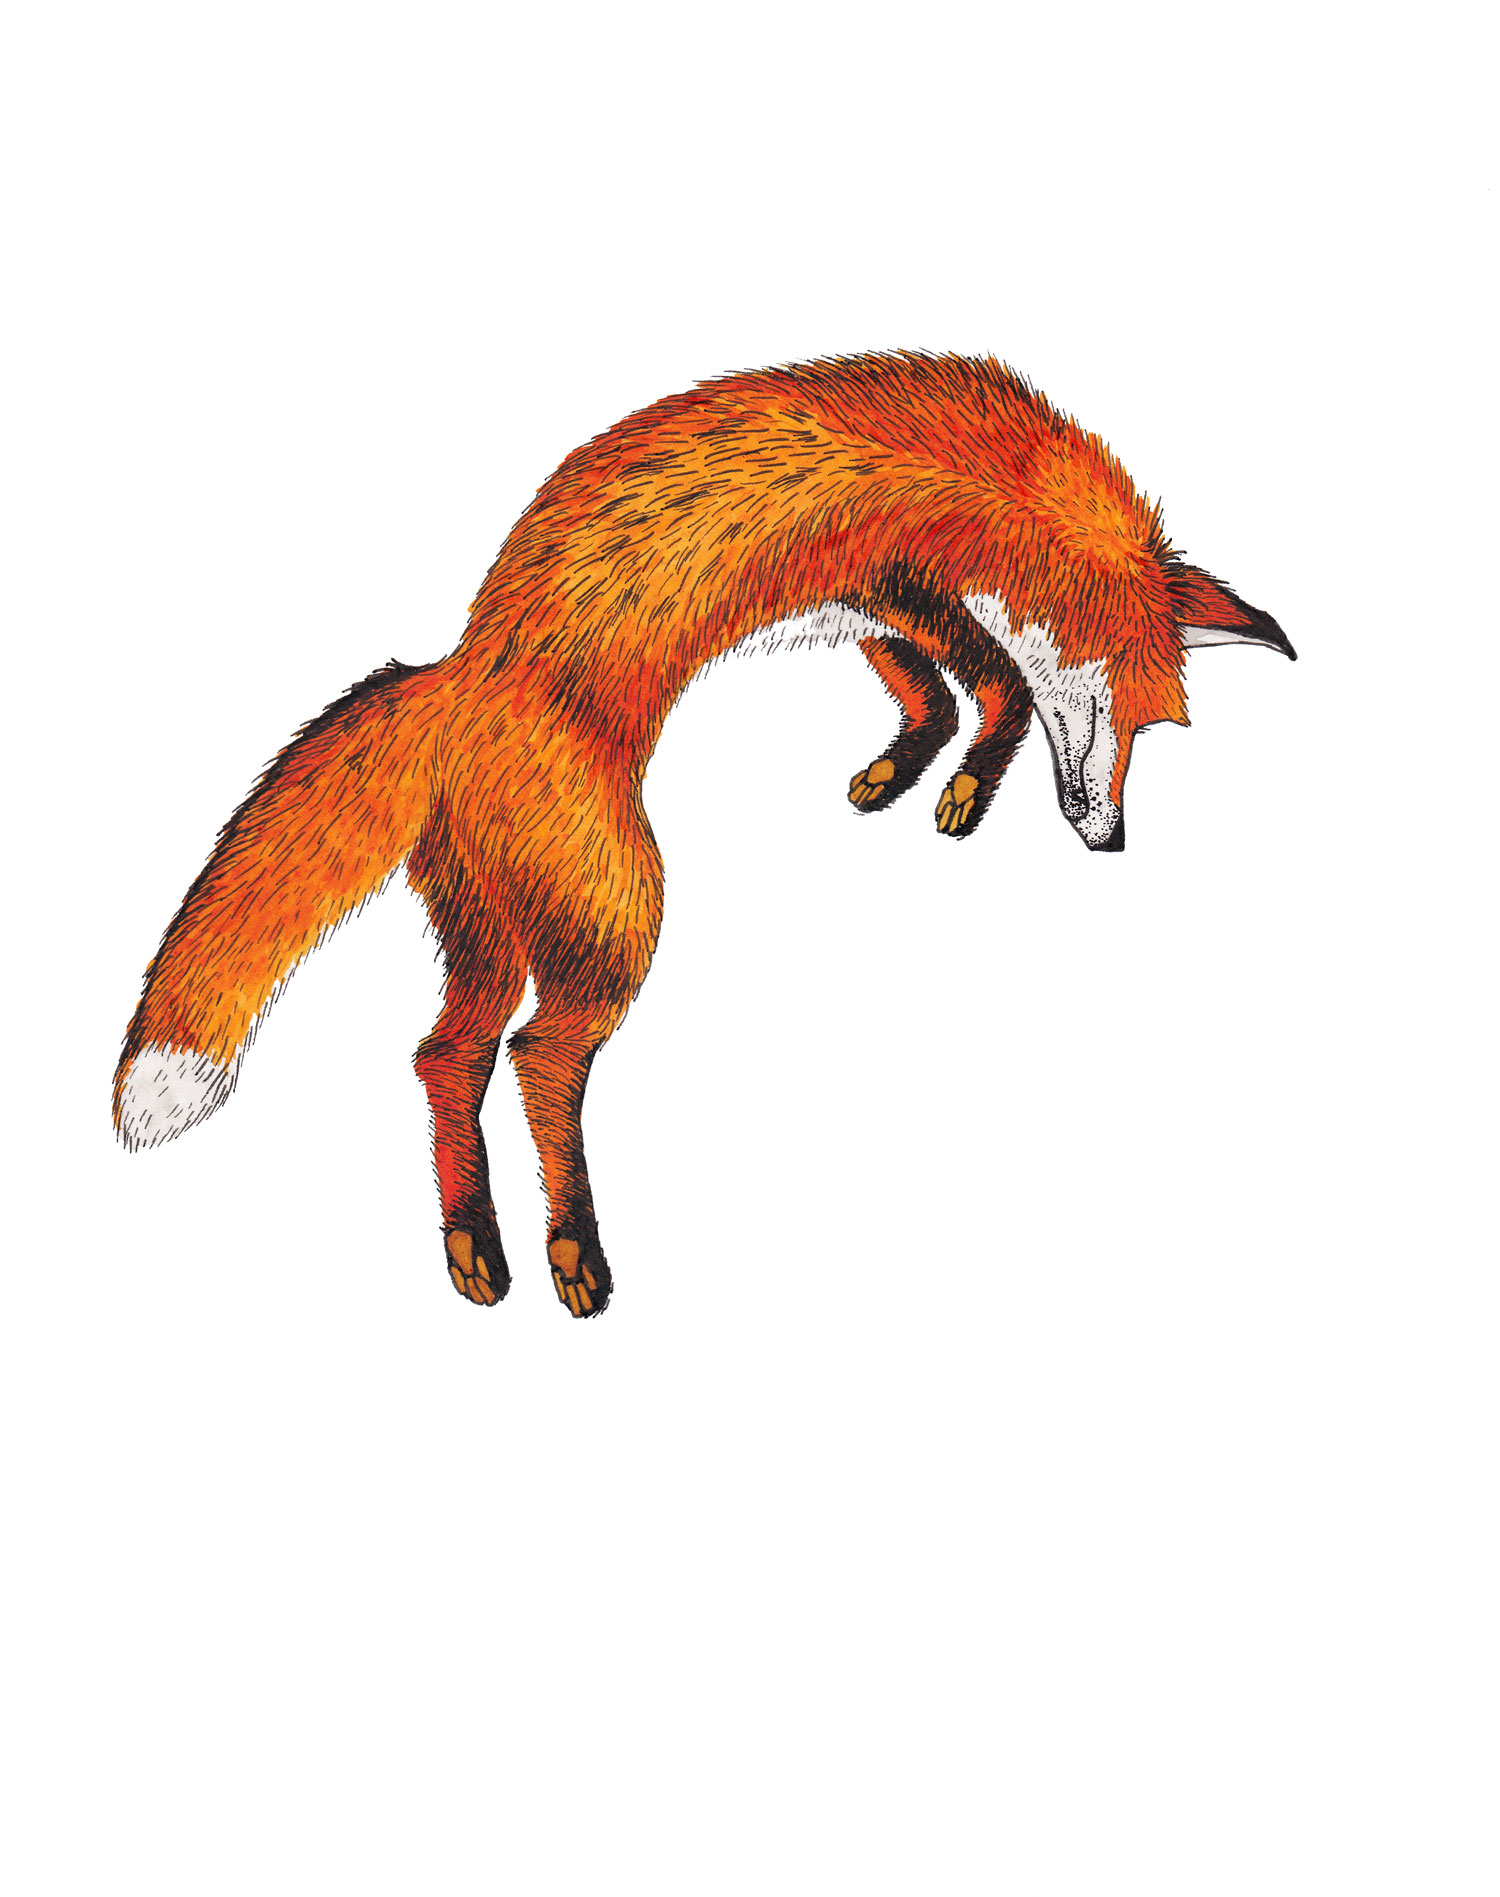 red-fox-leaping-illustration-matthew-woods.jpg